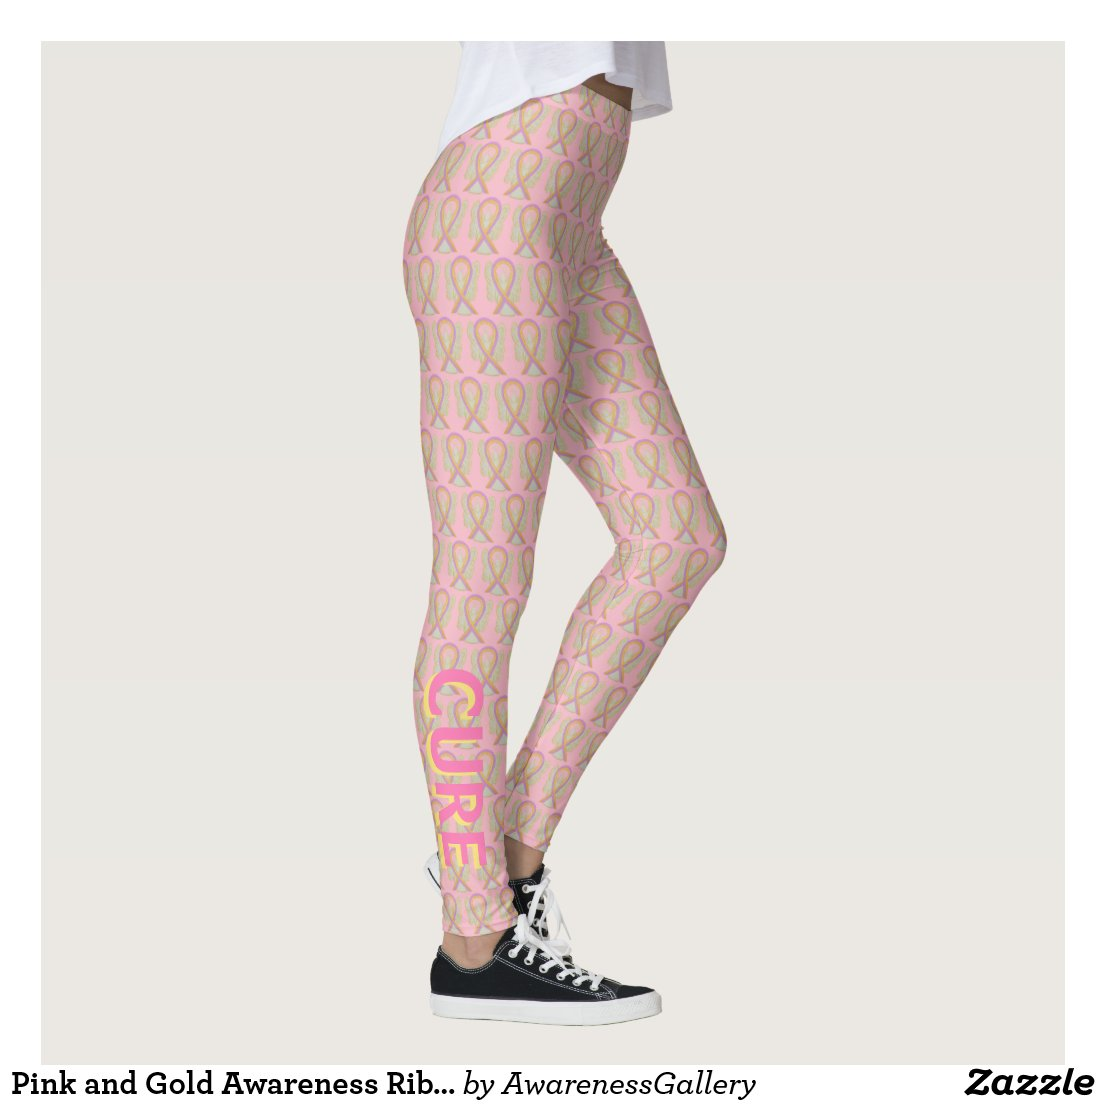 Pink and Gold Awareness Ribbon Angel Leggings